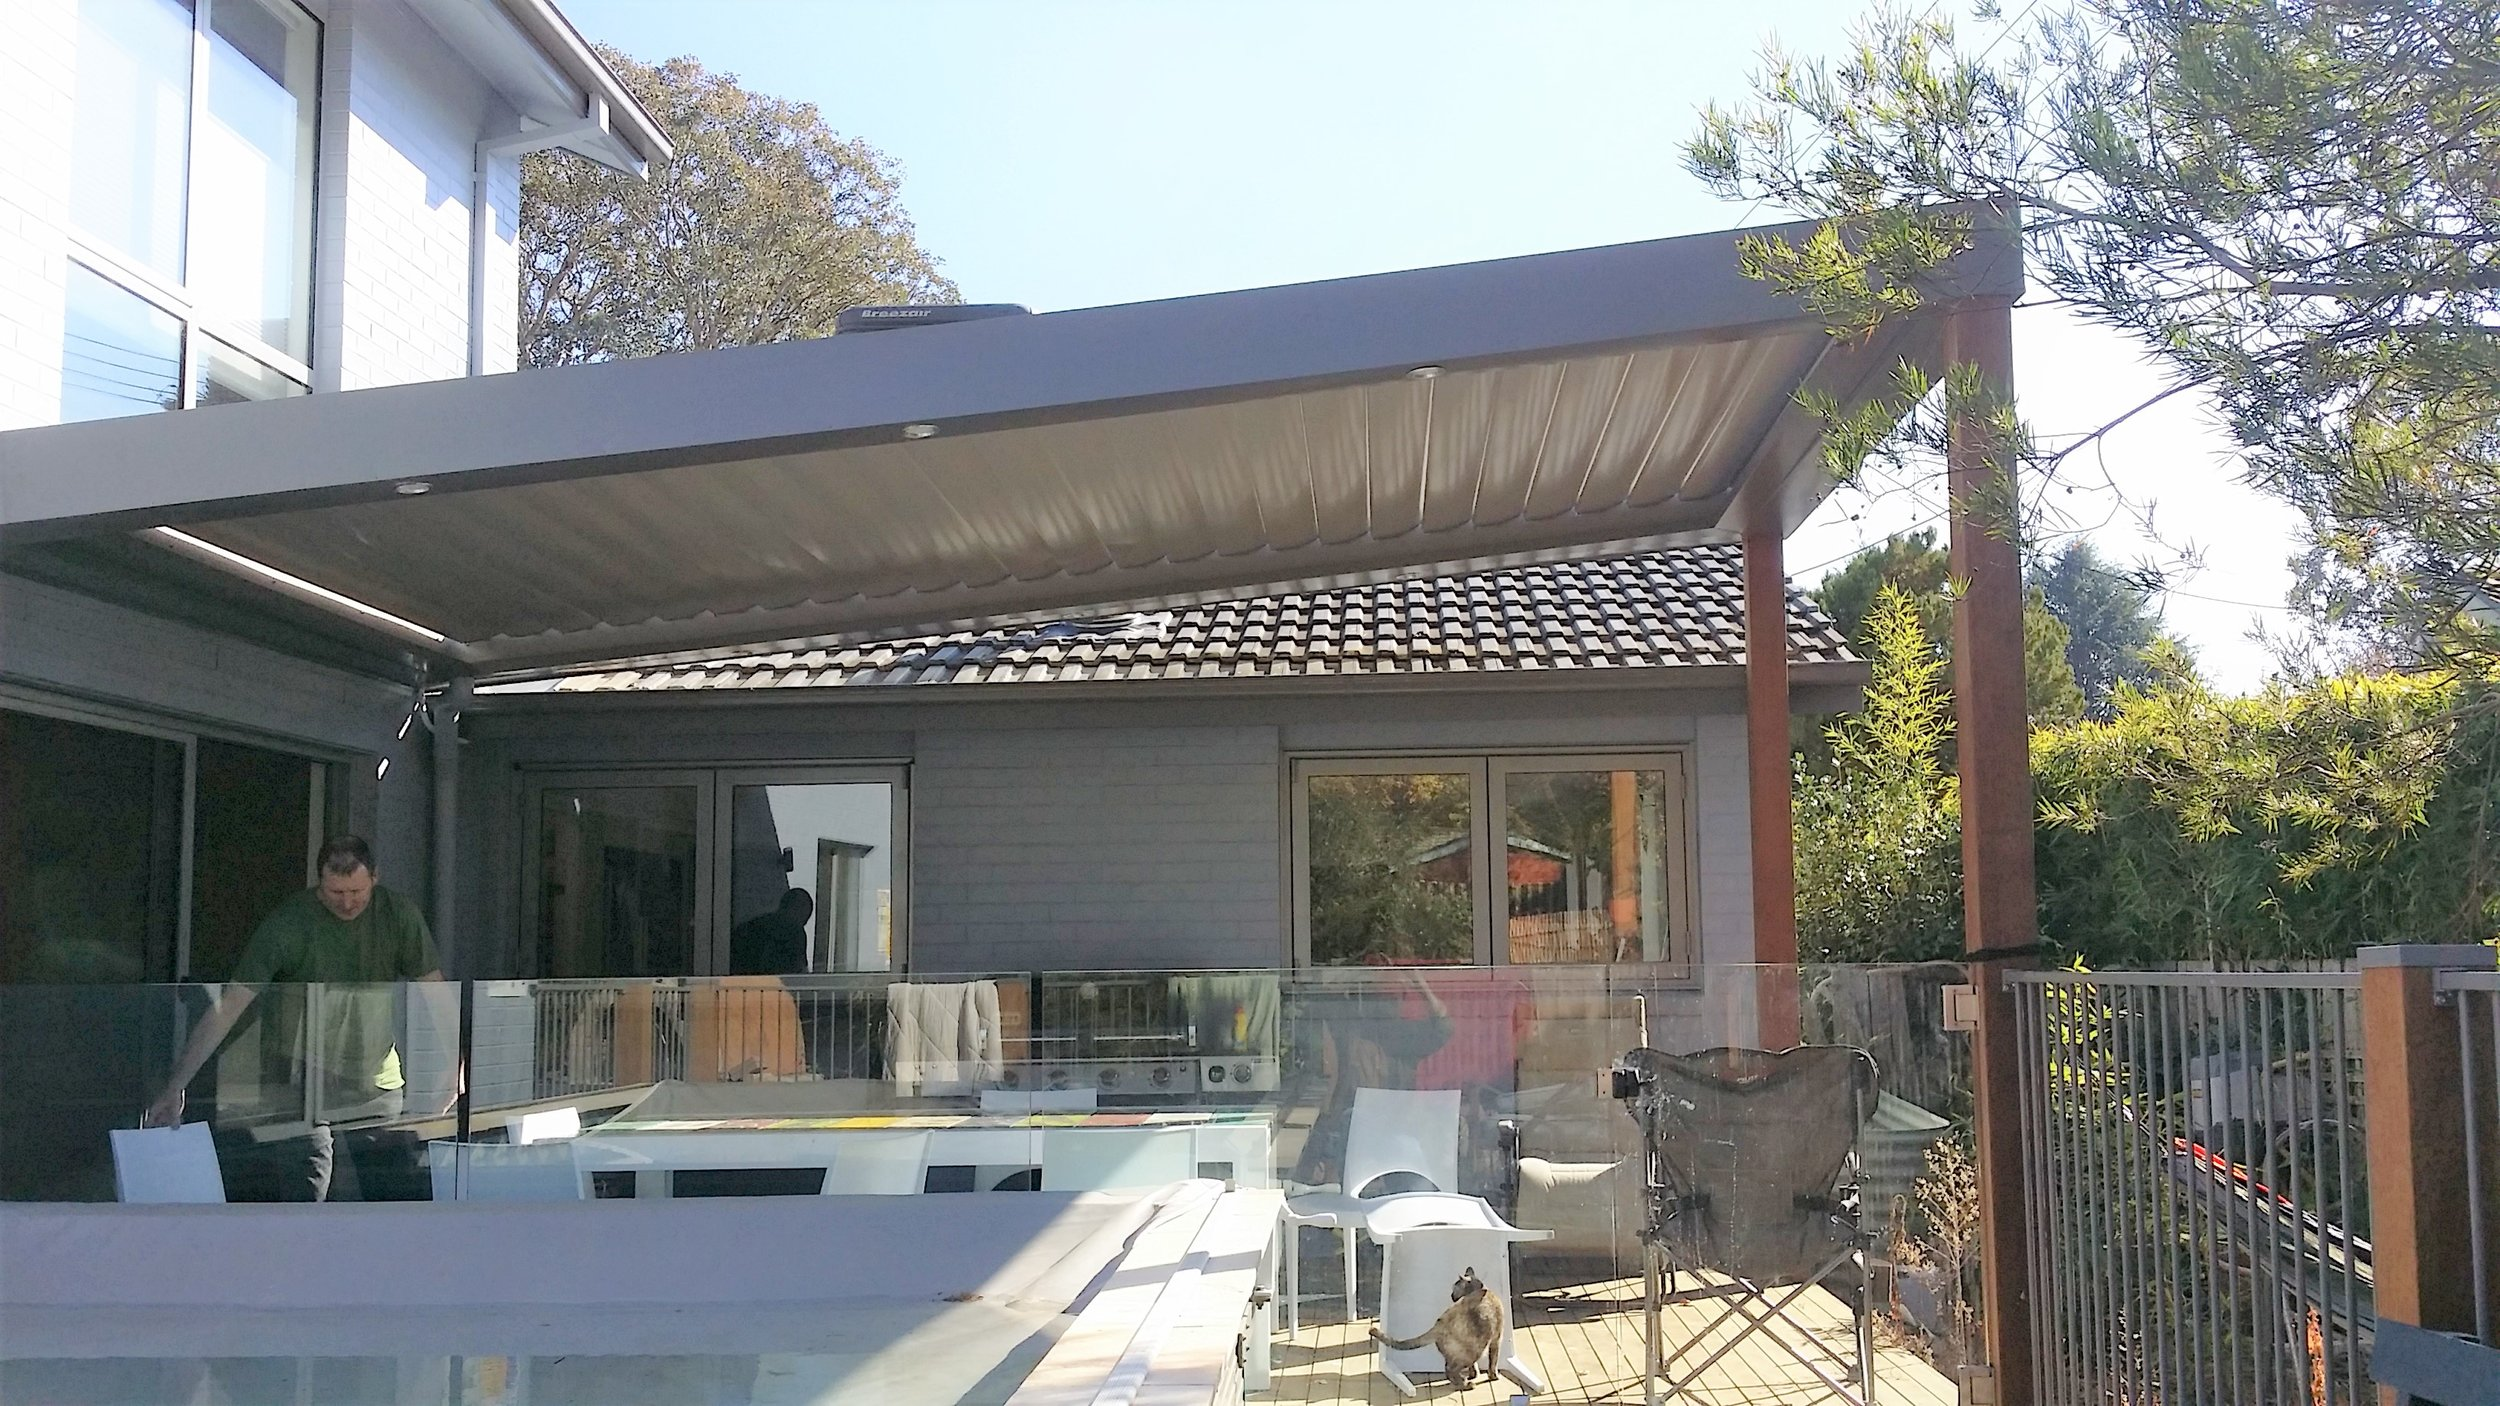 Pitched - Vergola® is versatile enough to match any architectural style and feature. We can build to a pitched roof (Skillion mono-pitch or shed-style) or to match angles or triangular sections